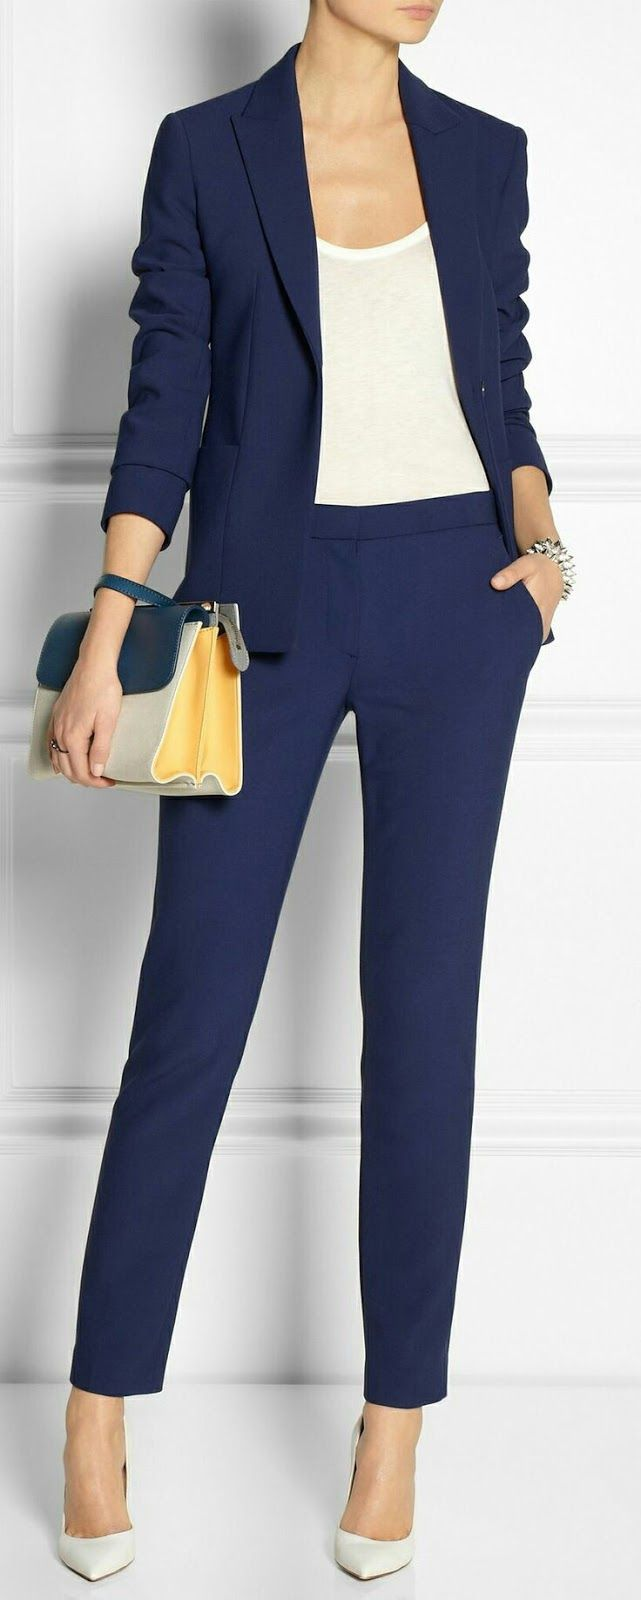 Luxury 25+ Best Ideas About Navy Pants Outfit On Pinterest | Navy Pants Navy Blue Pants And Womenu0026#39;s ...